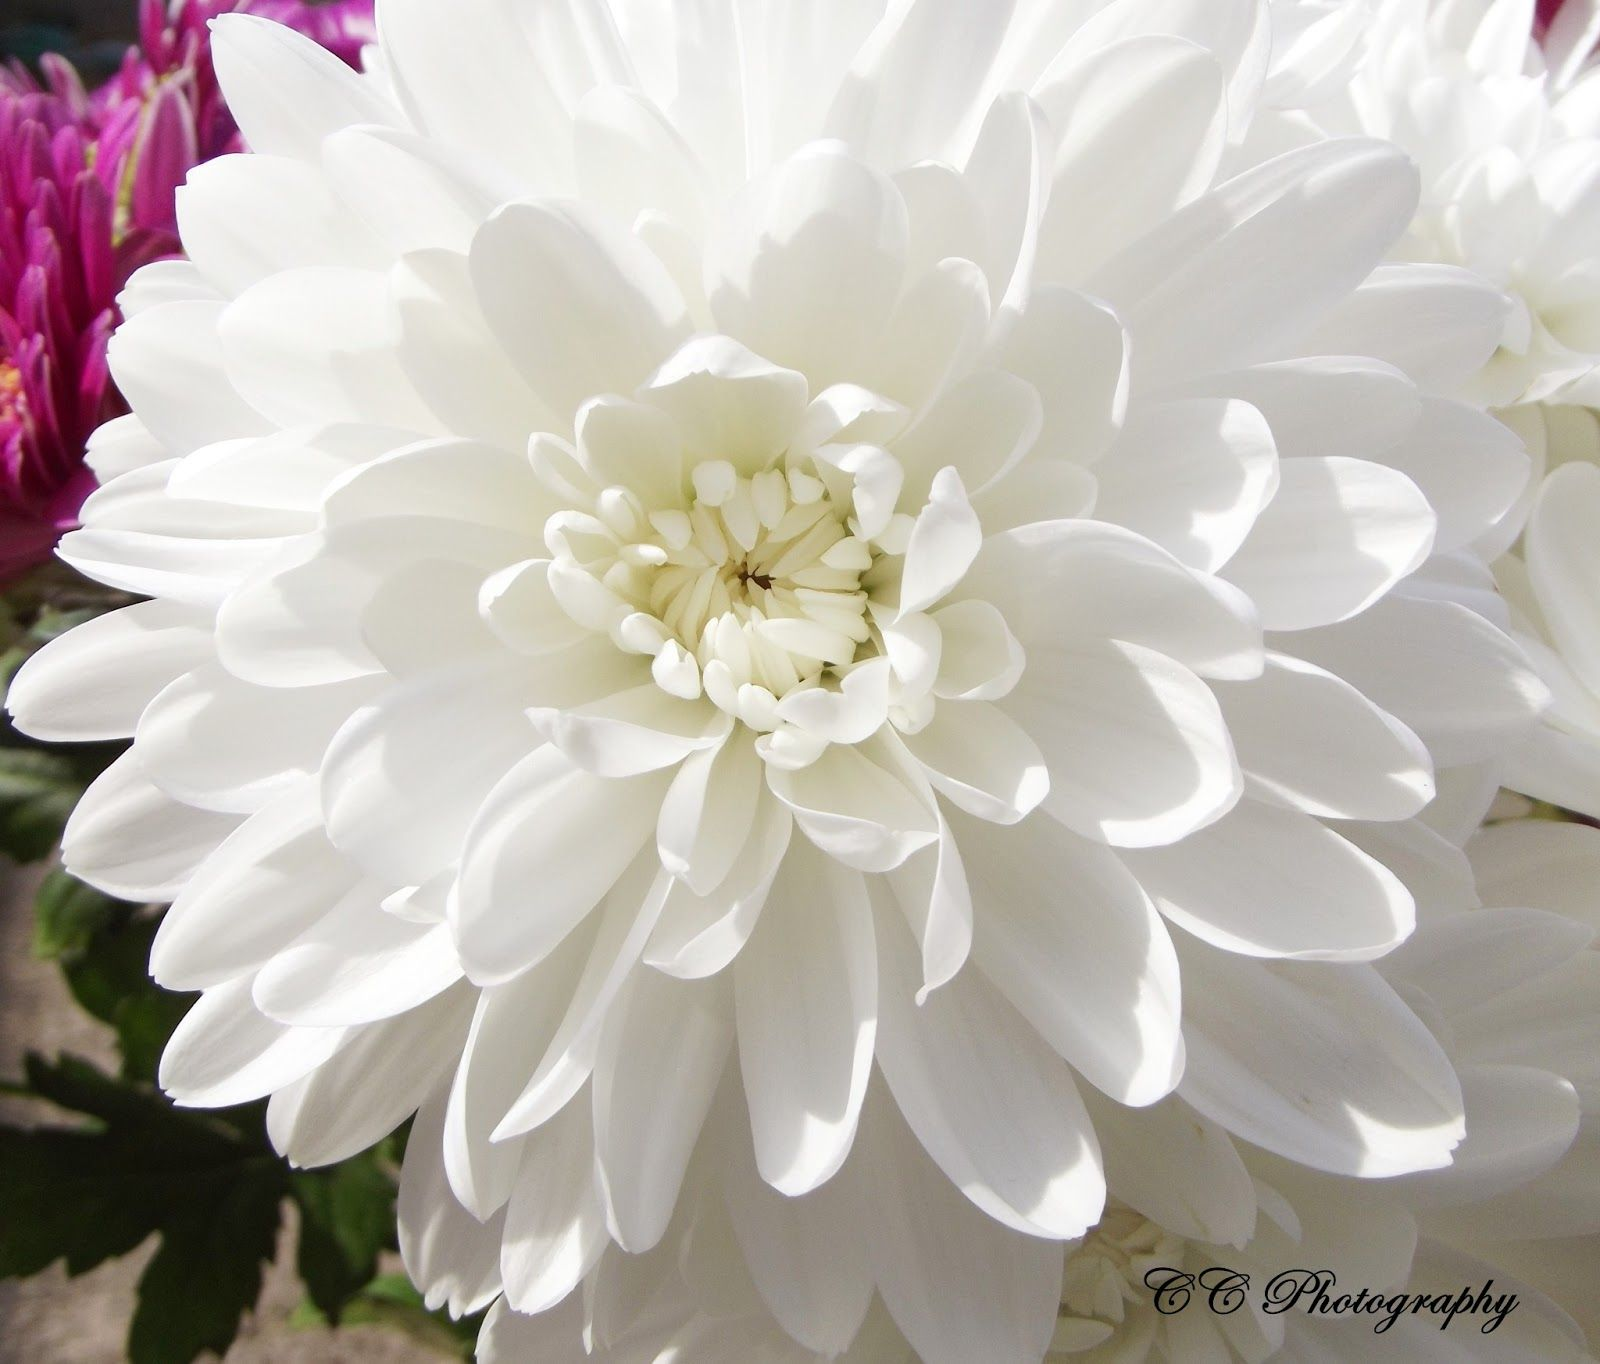 CC Photography White Chrysanthemums Flowers Photography party